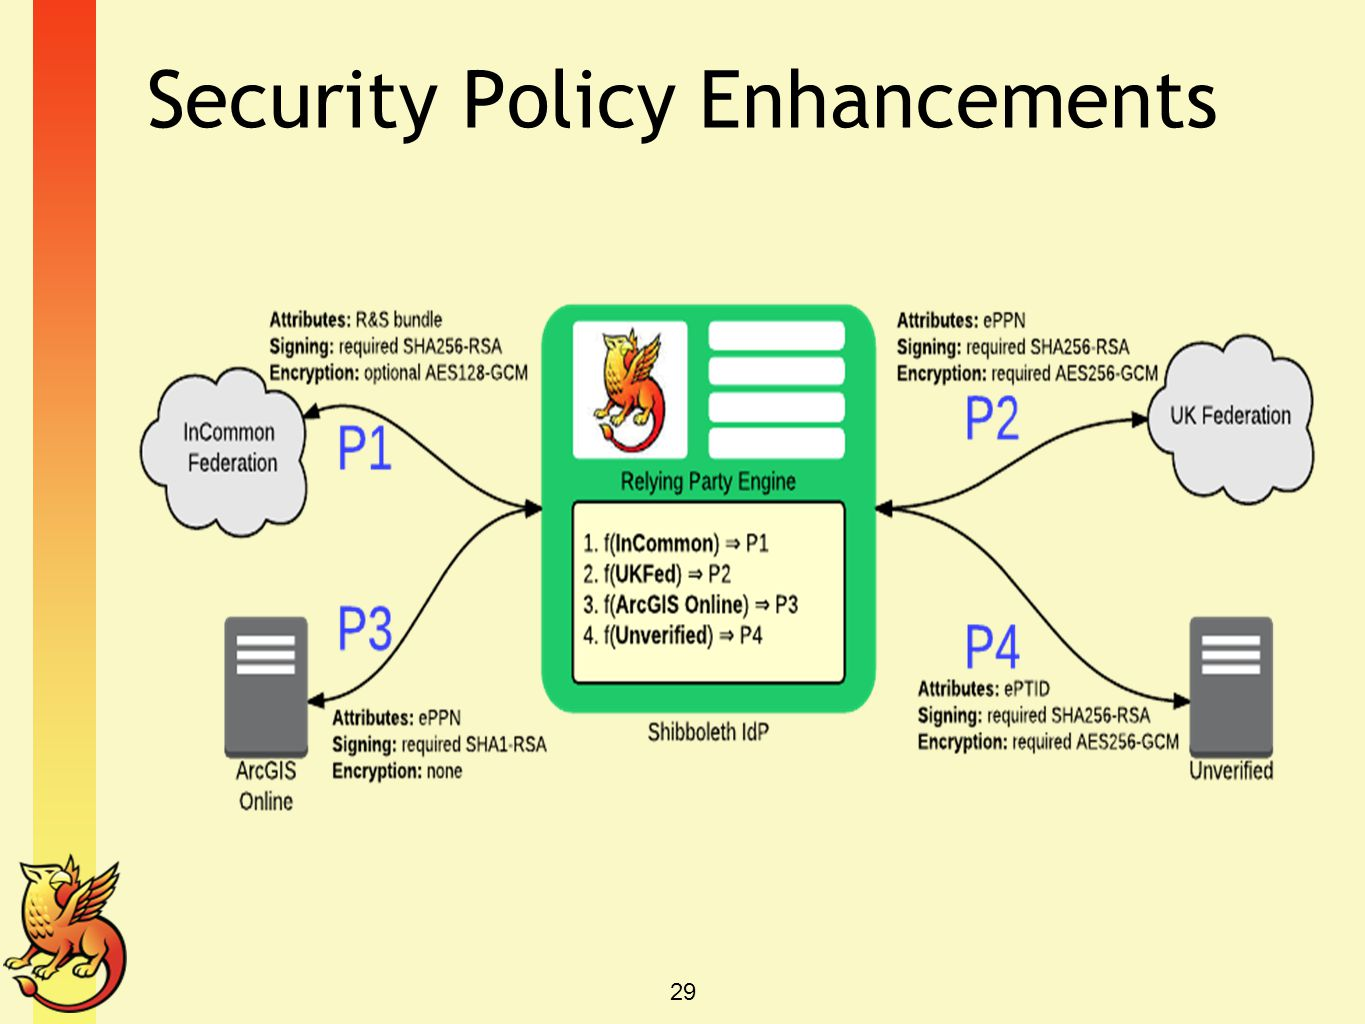 Security Policy Enhancements